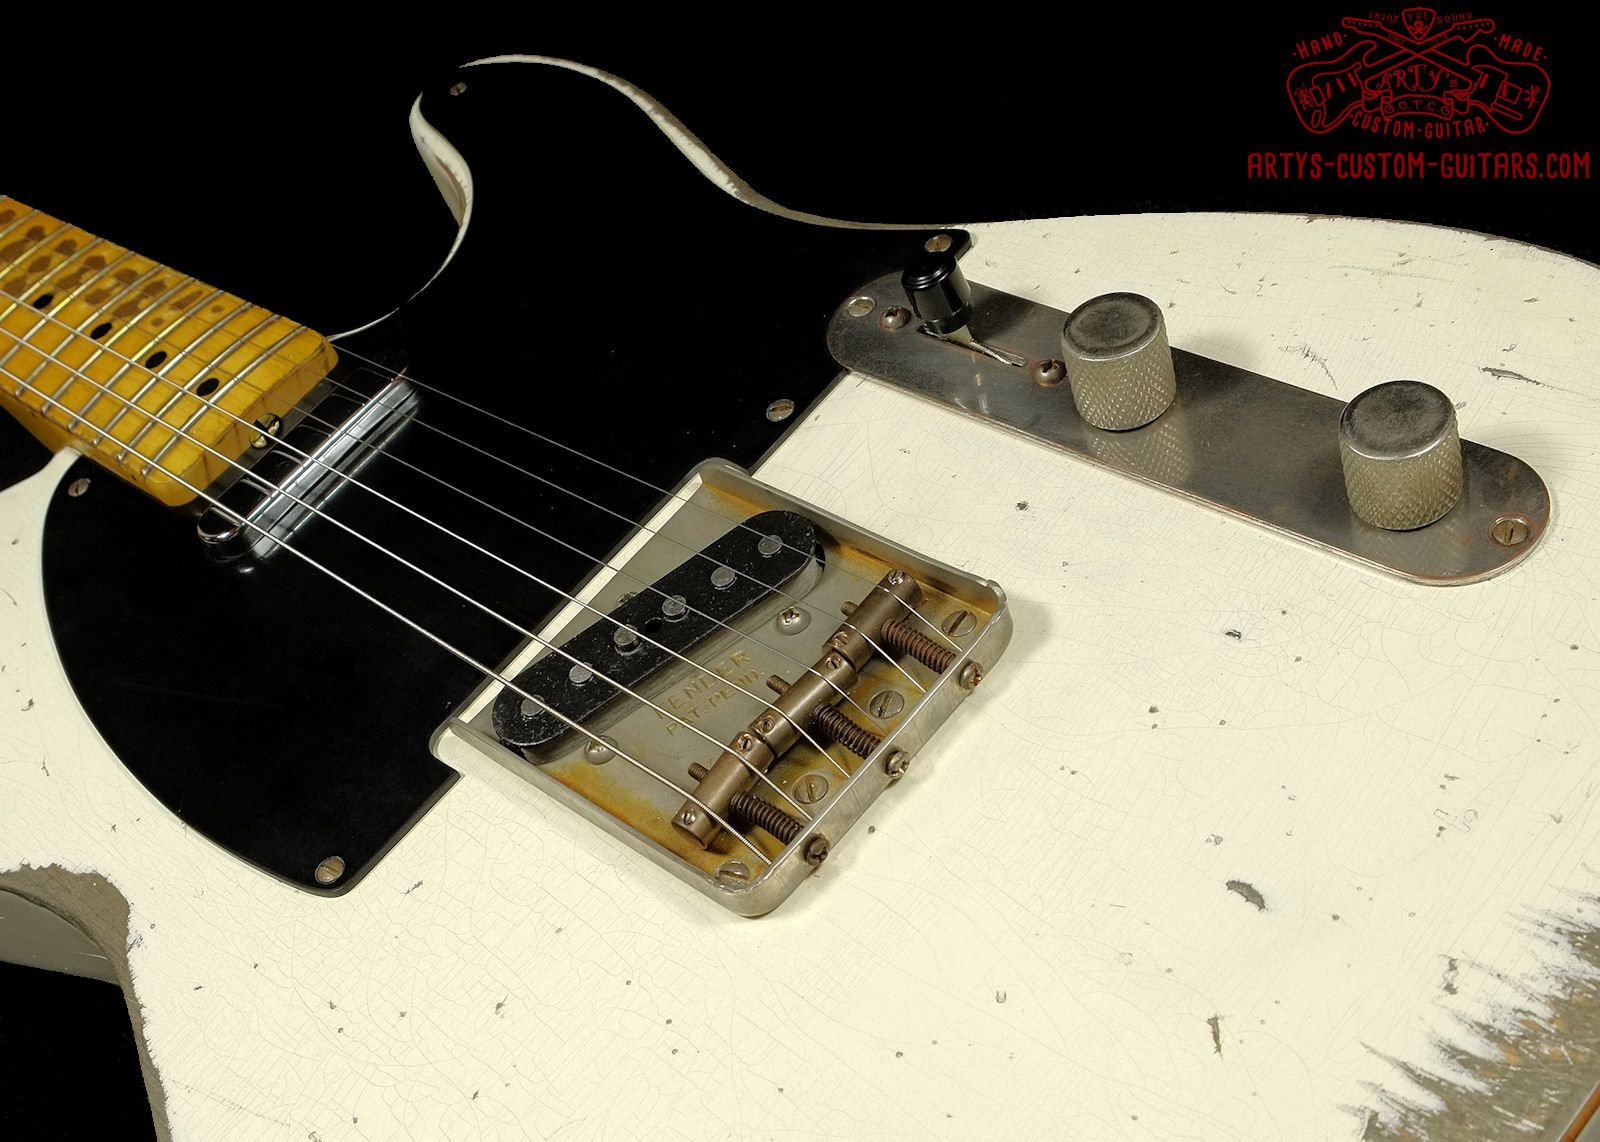 Telecaster Heavy Relic Body Artys Custom Guitars Shop Tele Relicing Bass Guitar Wiring Diagrams Aged Gallery Prewired Kit Harness Assembly Diagram Stratocaster P J Les Paul Jr